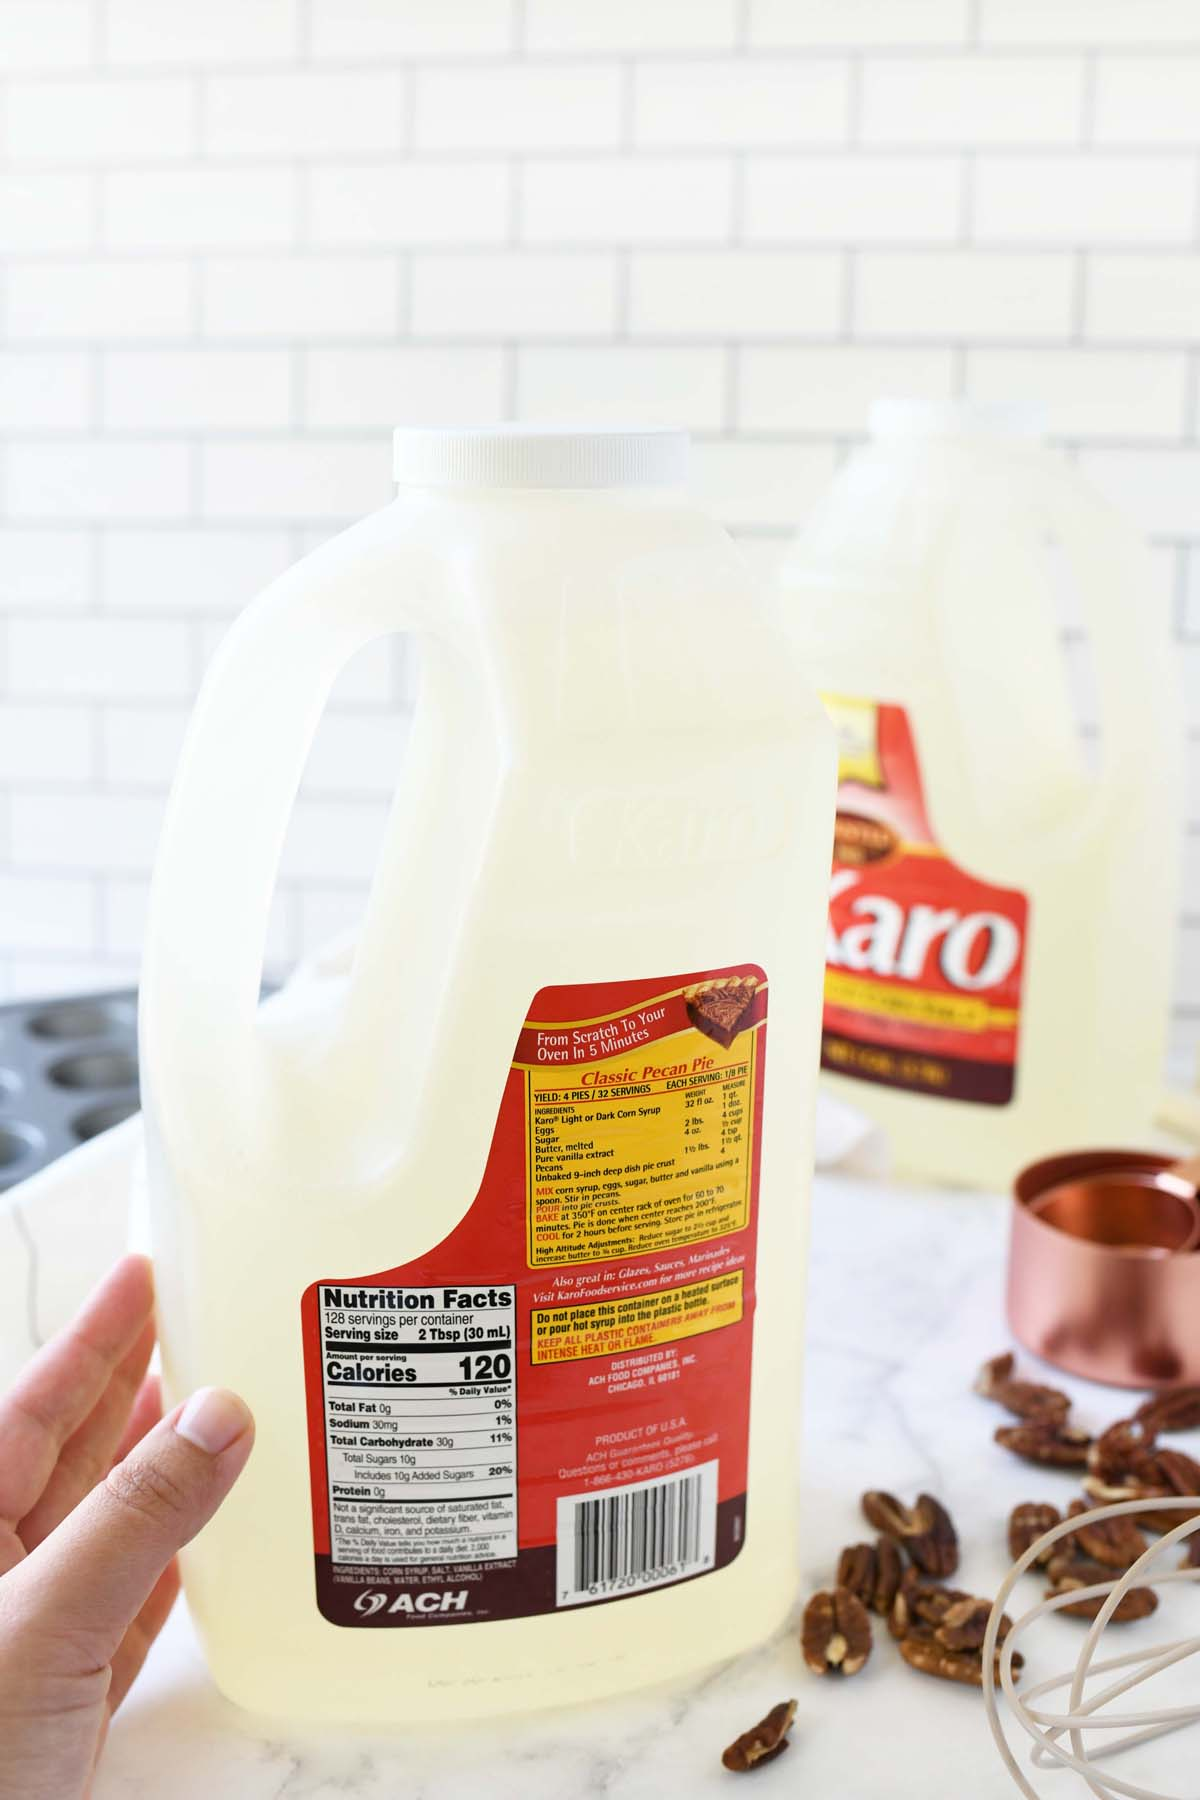 Karo Corn Syrup back of package.